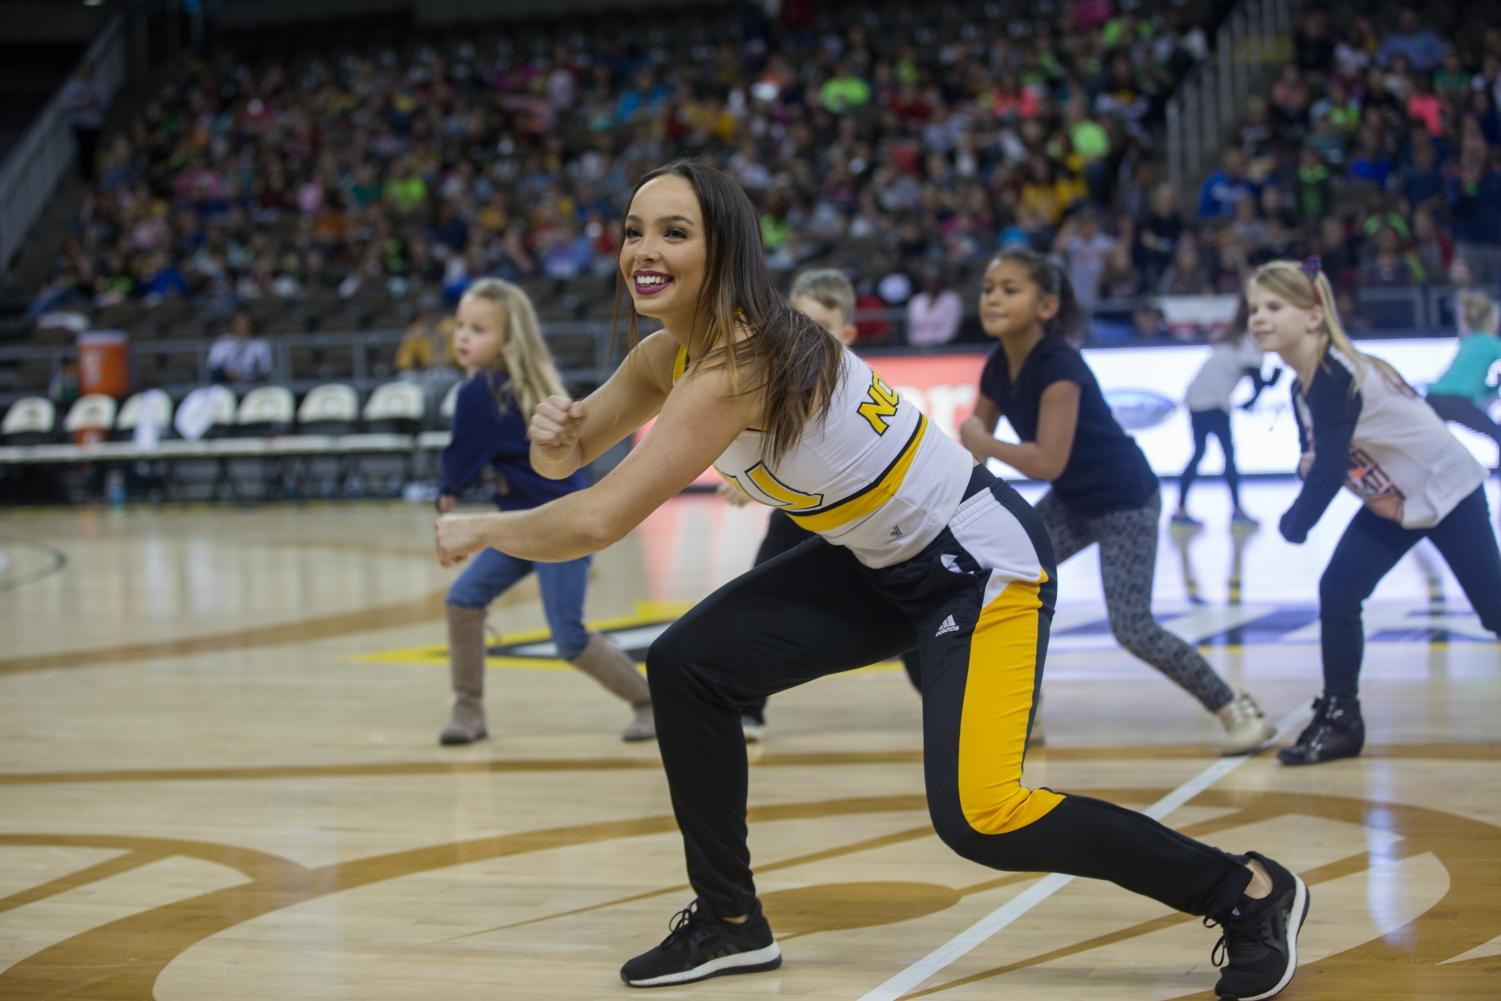 A+member+of+the+NKU+dance+team+leads+fans+in+a+dance+at+halftime.